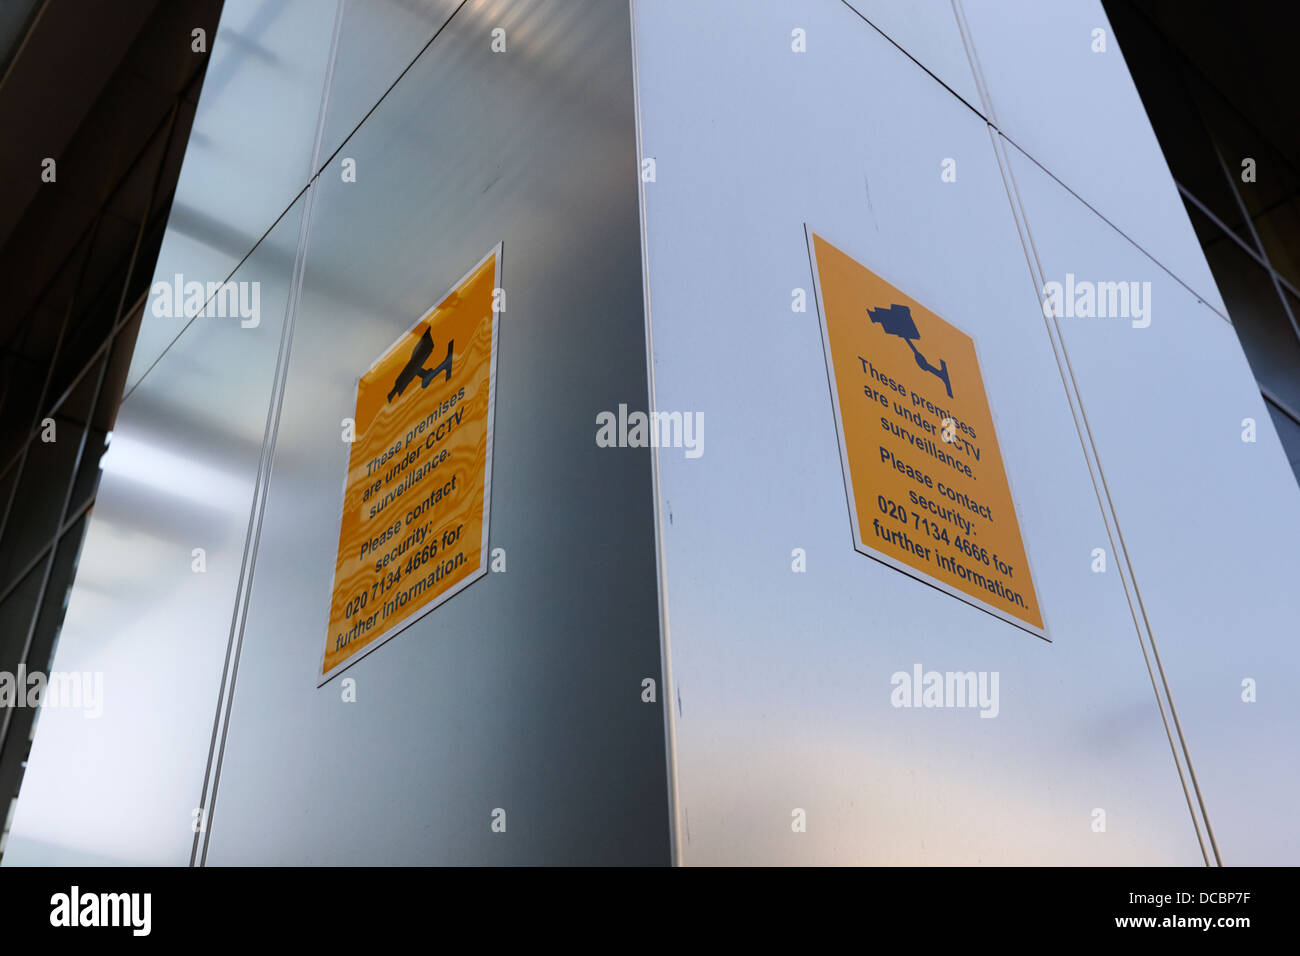 premises under cctv surveillance signs in canary wharf London England UK Stock Photo